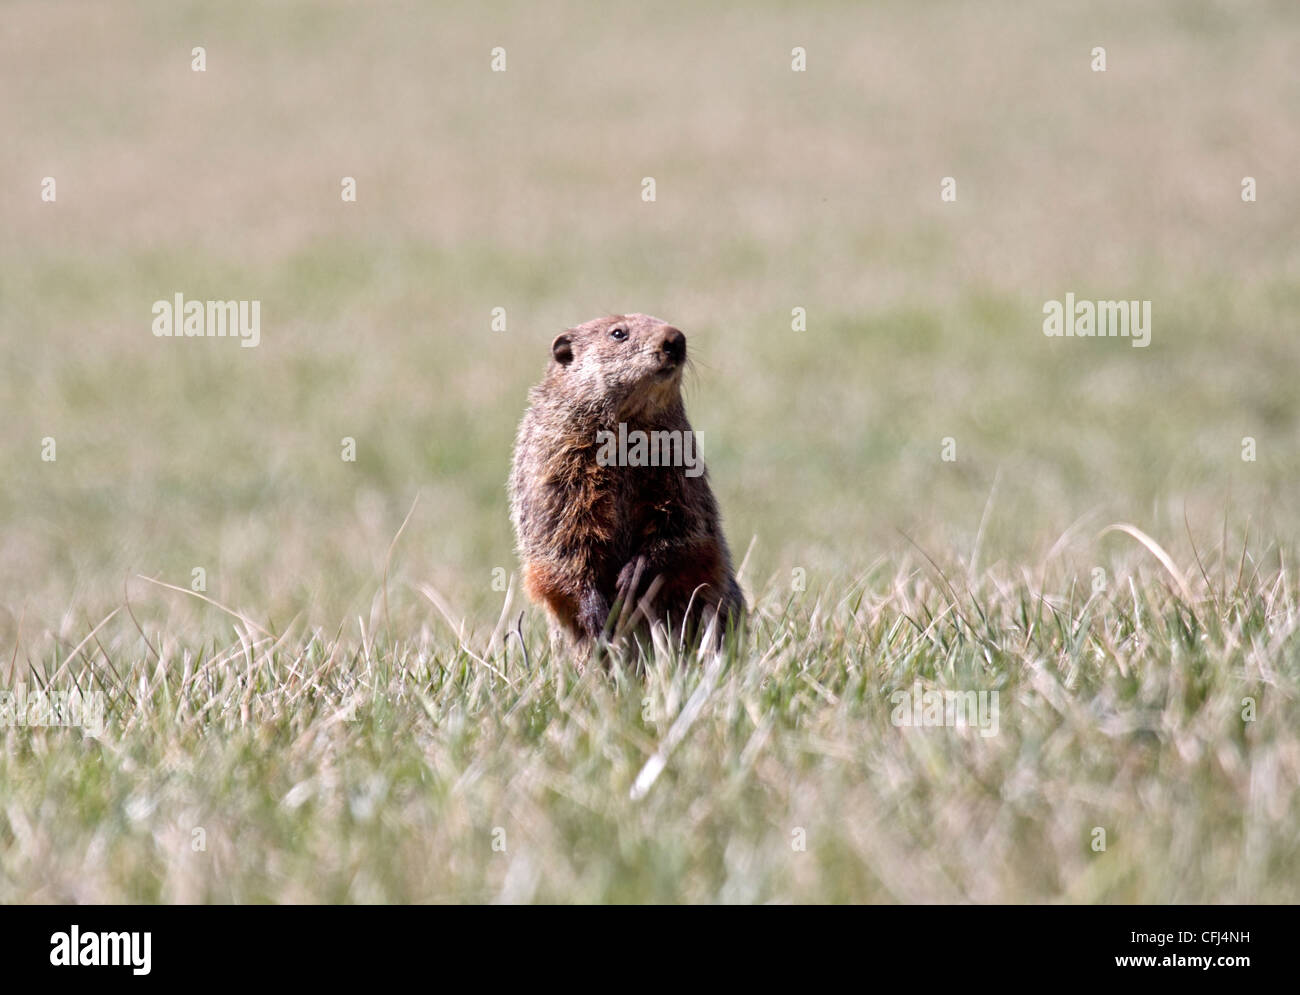 Groundhog or Woodchuck peering intently in field in North Carolina - Stock Image